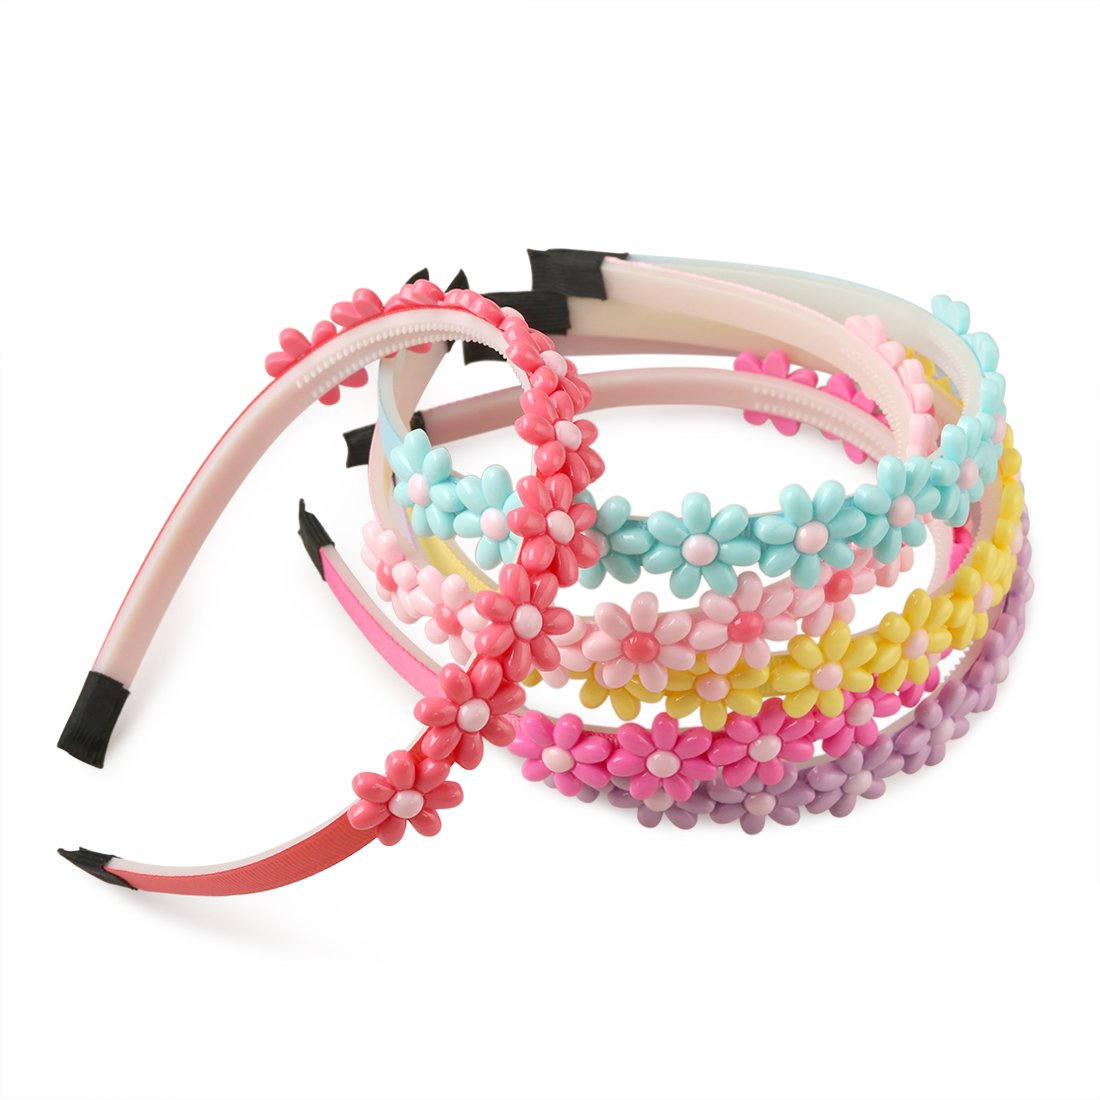 XIMA 6pcs Flower Headband for Girls Teens Kids Gifts Hair Accessories Spring Colors by XIMA